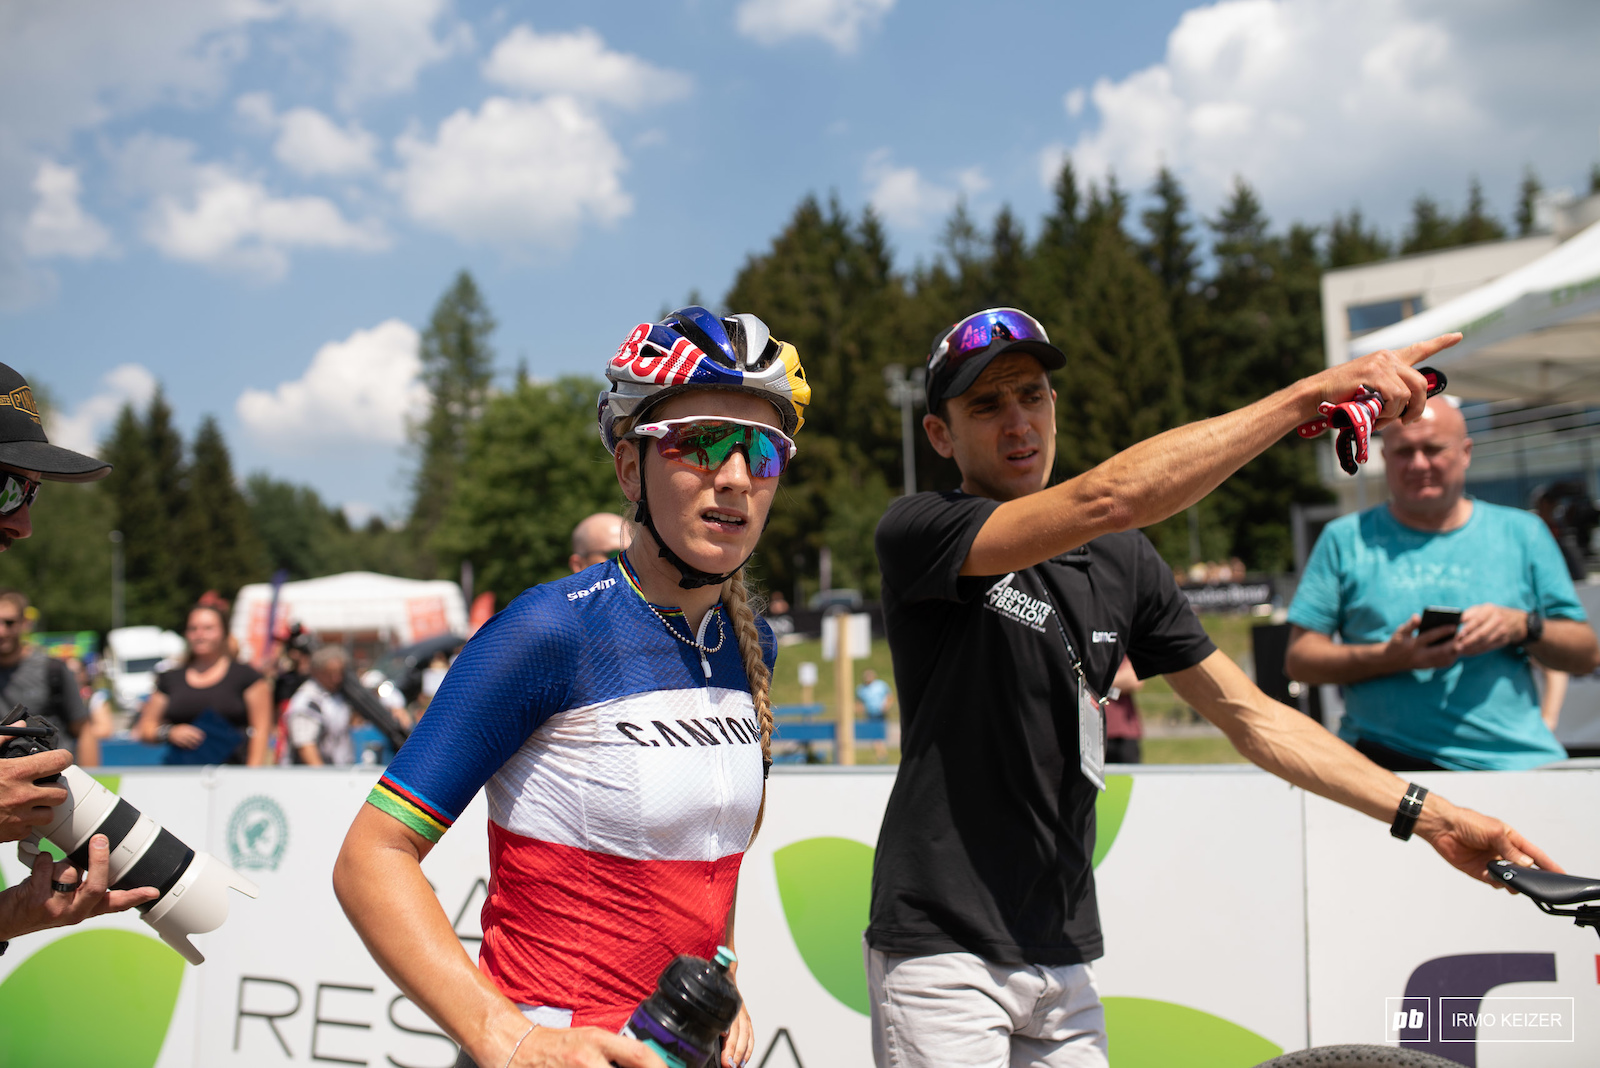 Pauline Ferrand-Prevot is in form and took third today.